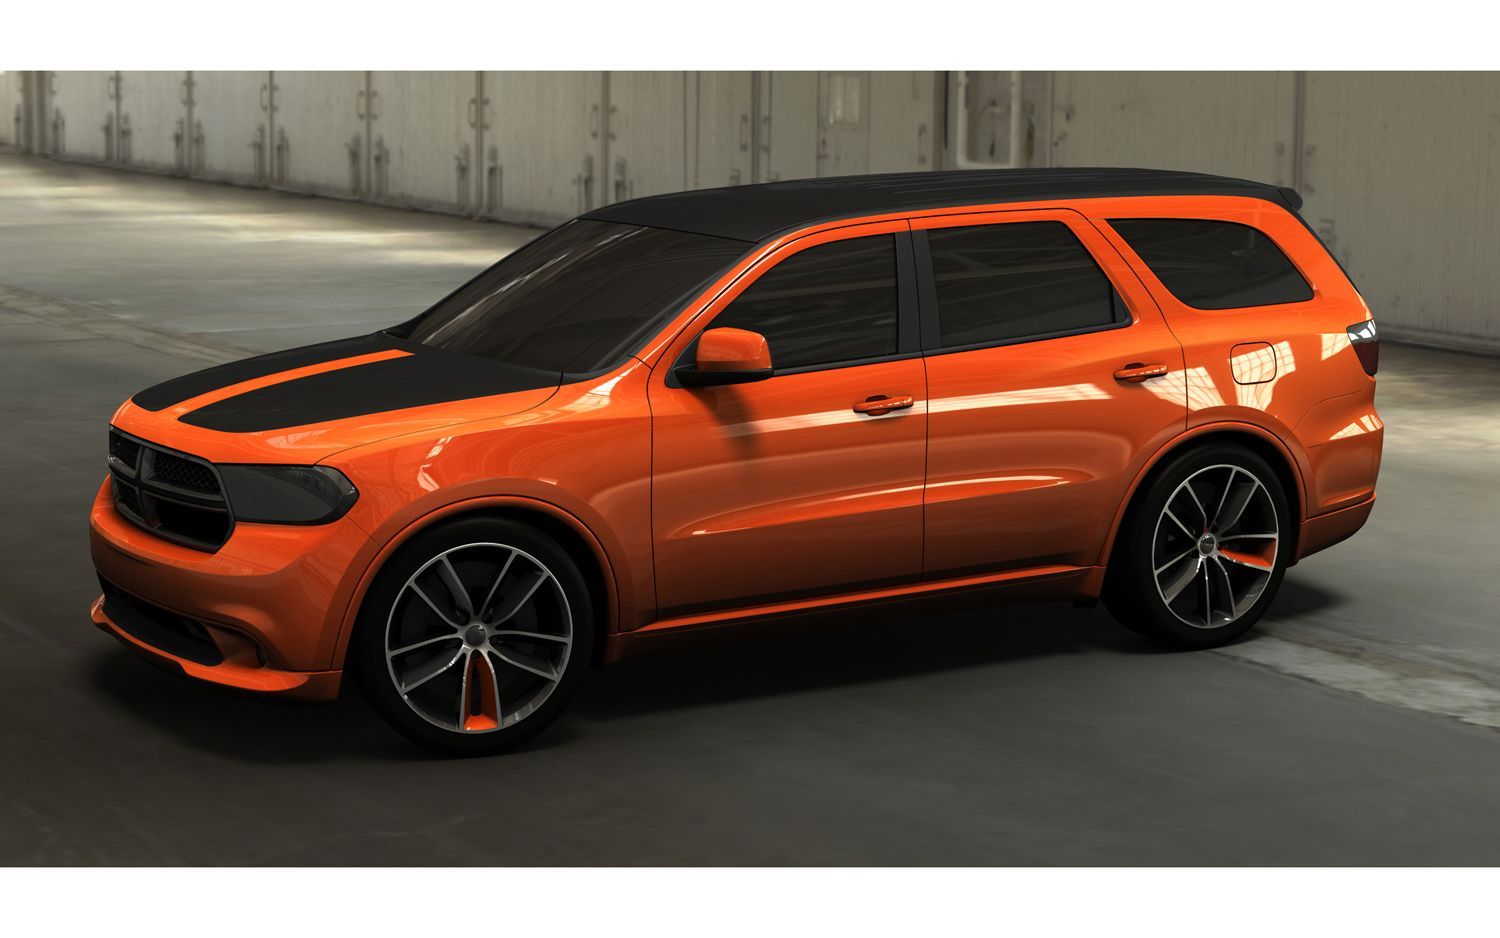 Mopar Bringing Modified Fiat Chrysler Dodge And Ram Vehicles To Sema Dodge Durango Dodge Suv Mopar